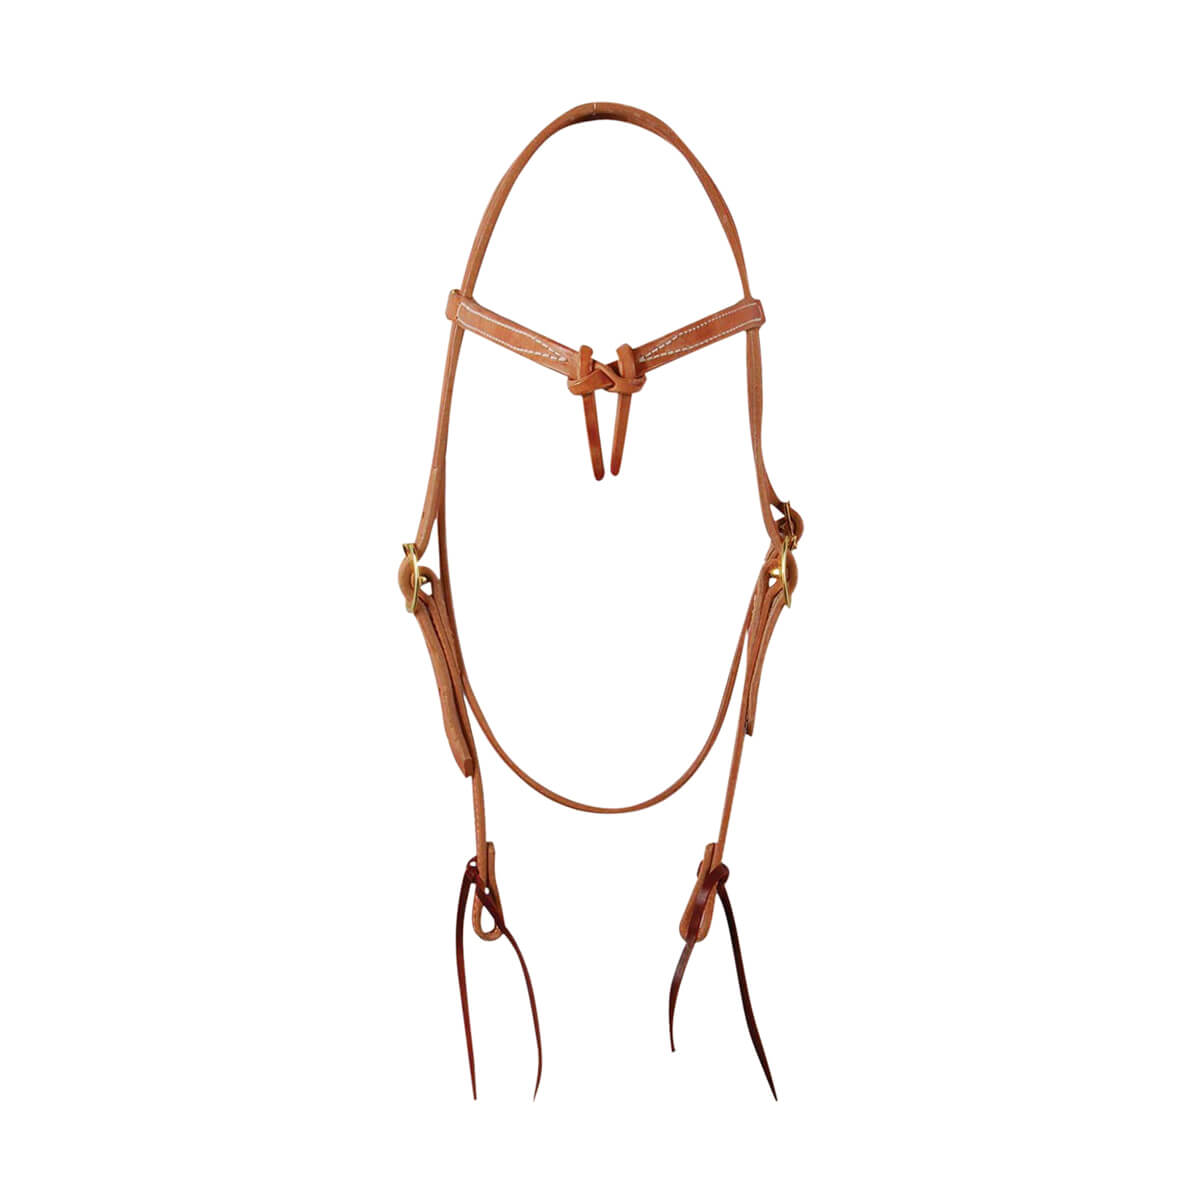 Futurity Headstall with Ties - Harness Leather